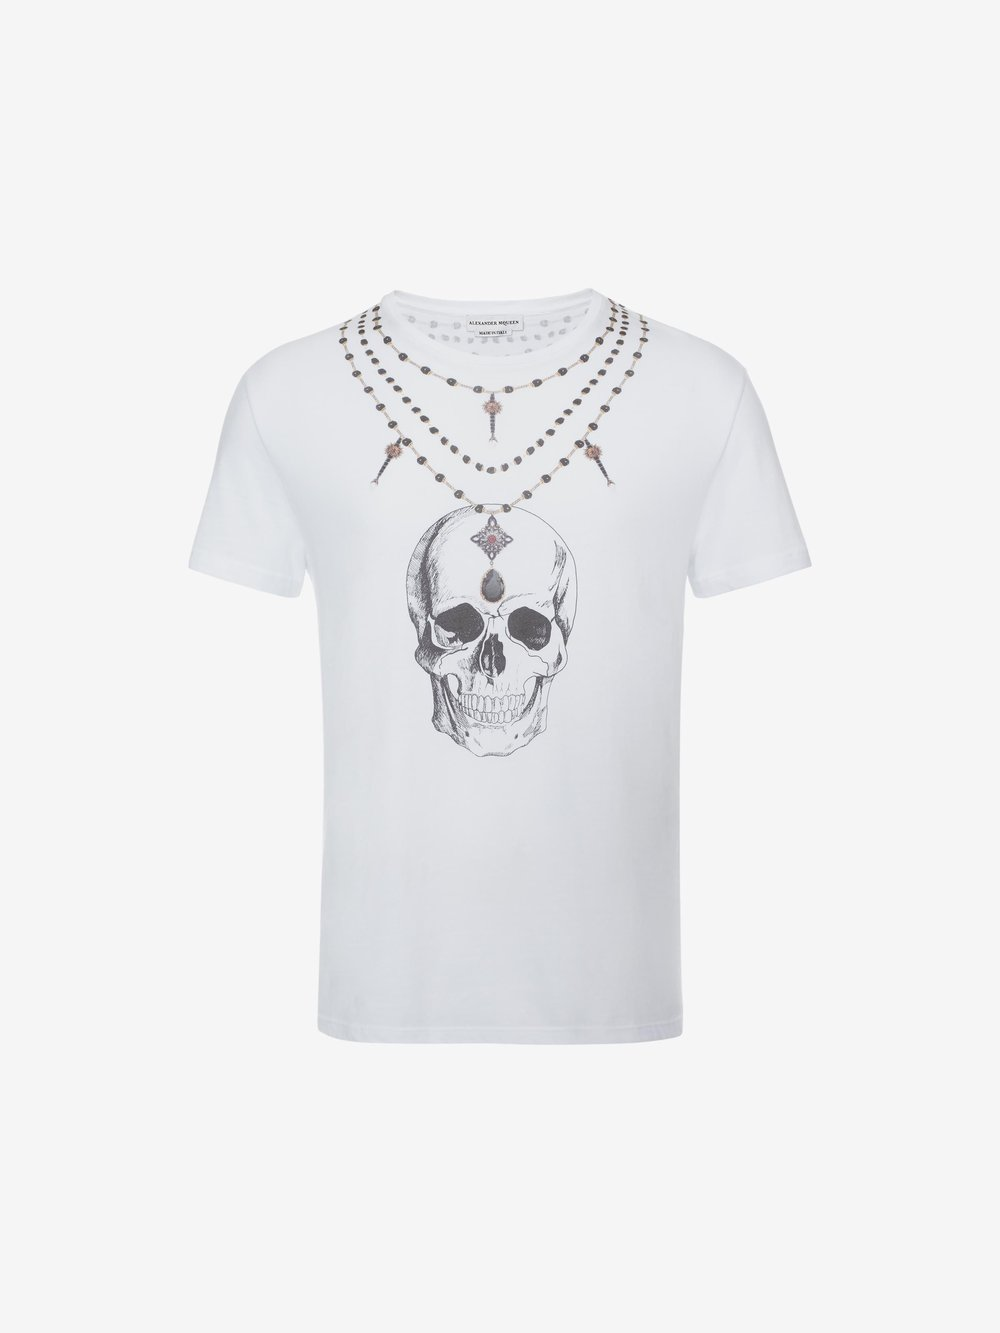 MCQUEEN ORGANIC COTTON T-SHIRT  $ 345.jpg